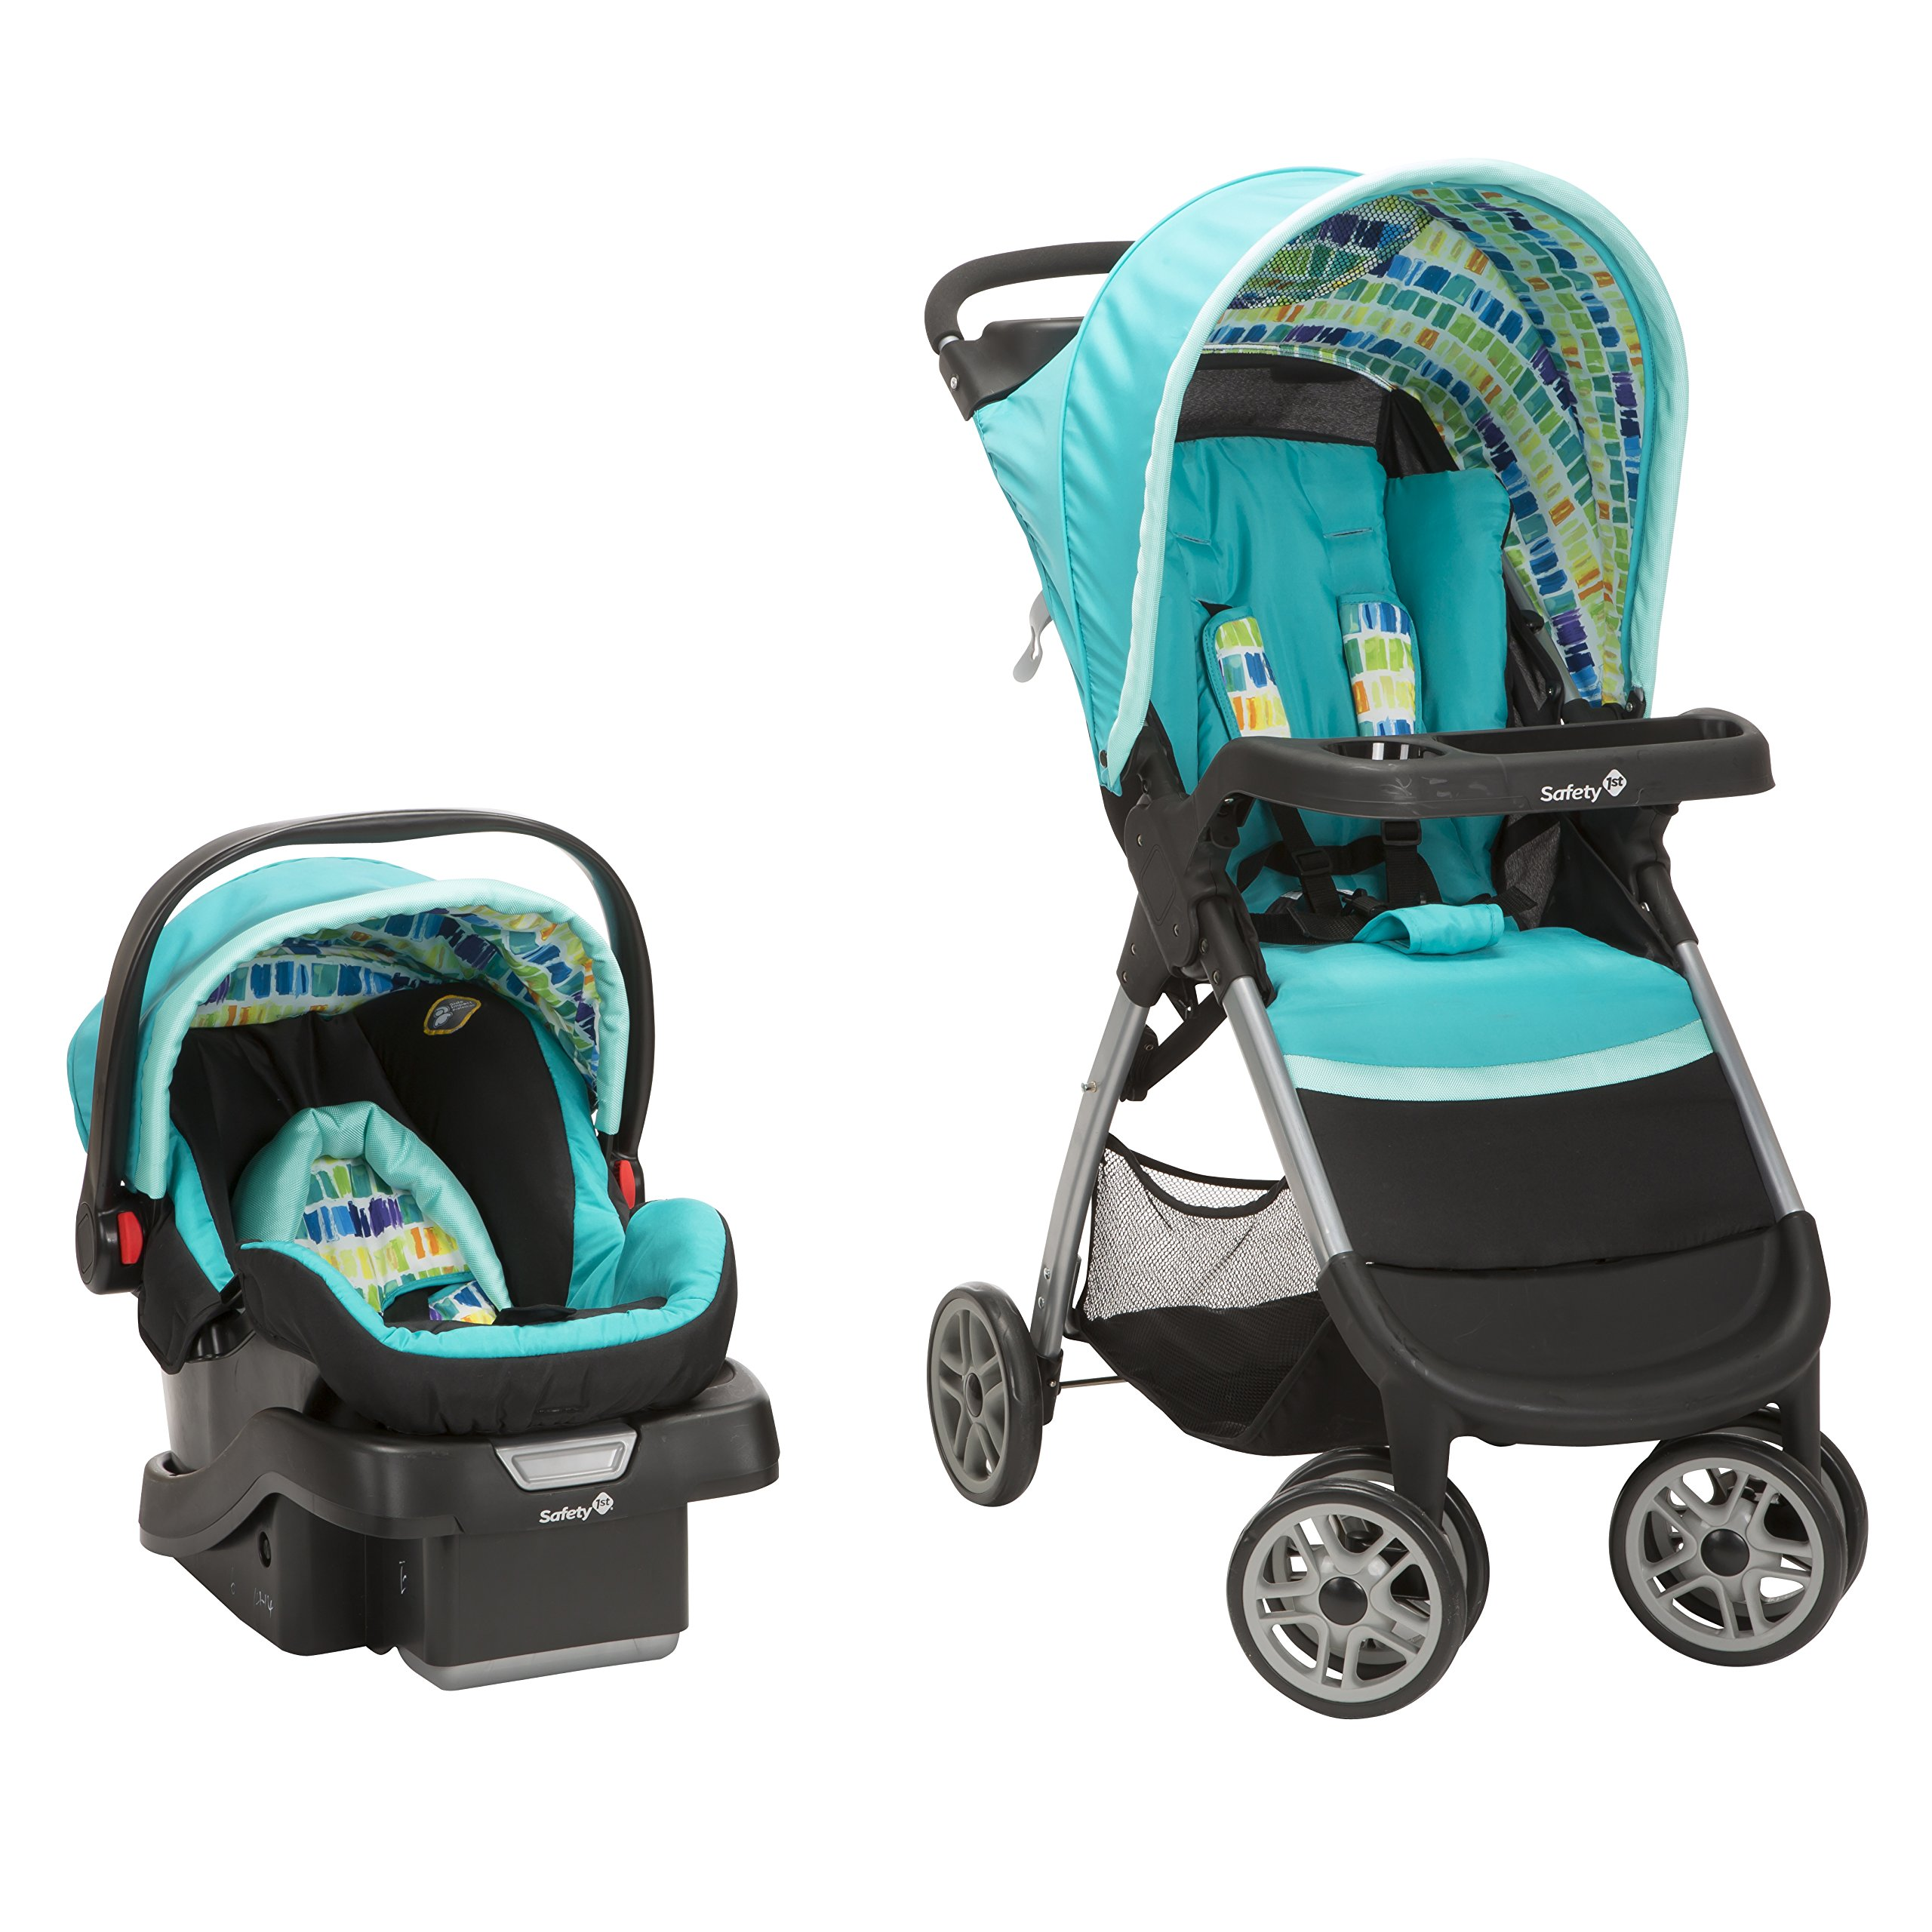 Safety 1st Amble Quad Travel System with onboard30 Infant Car Seat, Rainbow Ice